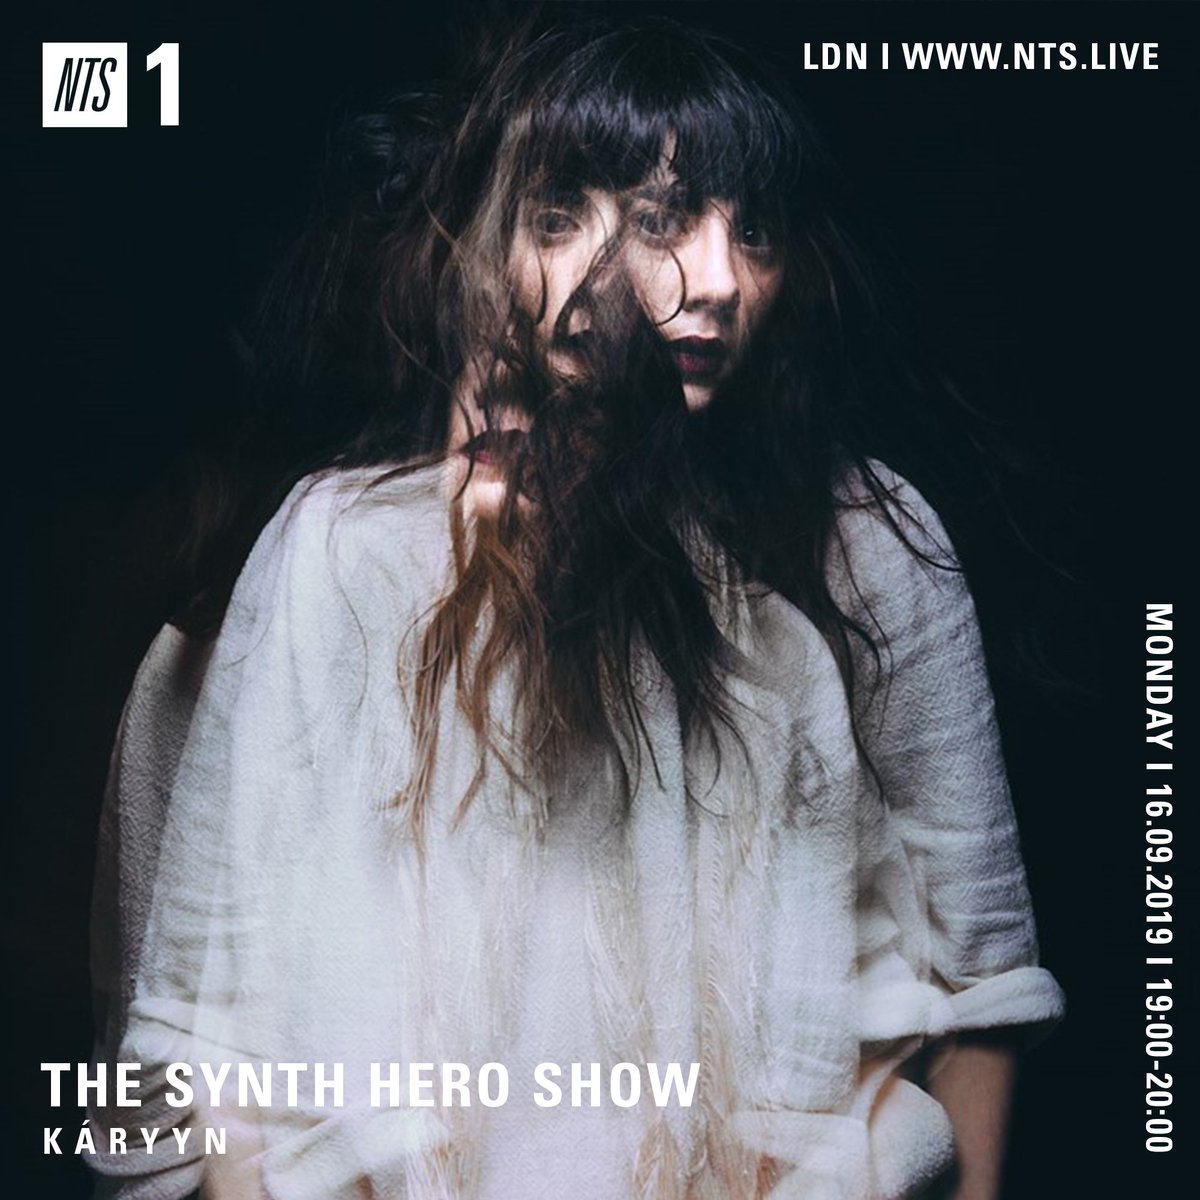 .@KARYYNmusics The @SynthHero Show mix on @NTSlive is now available on SoundCloud as a full hour mix! Listen here: 🎹 soundcloud.com/synthhero…/k-a-r-y-y-n-synth-hero-mix